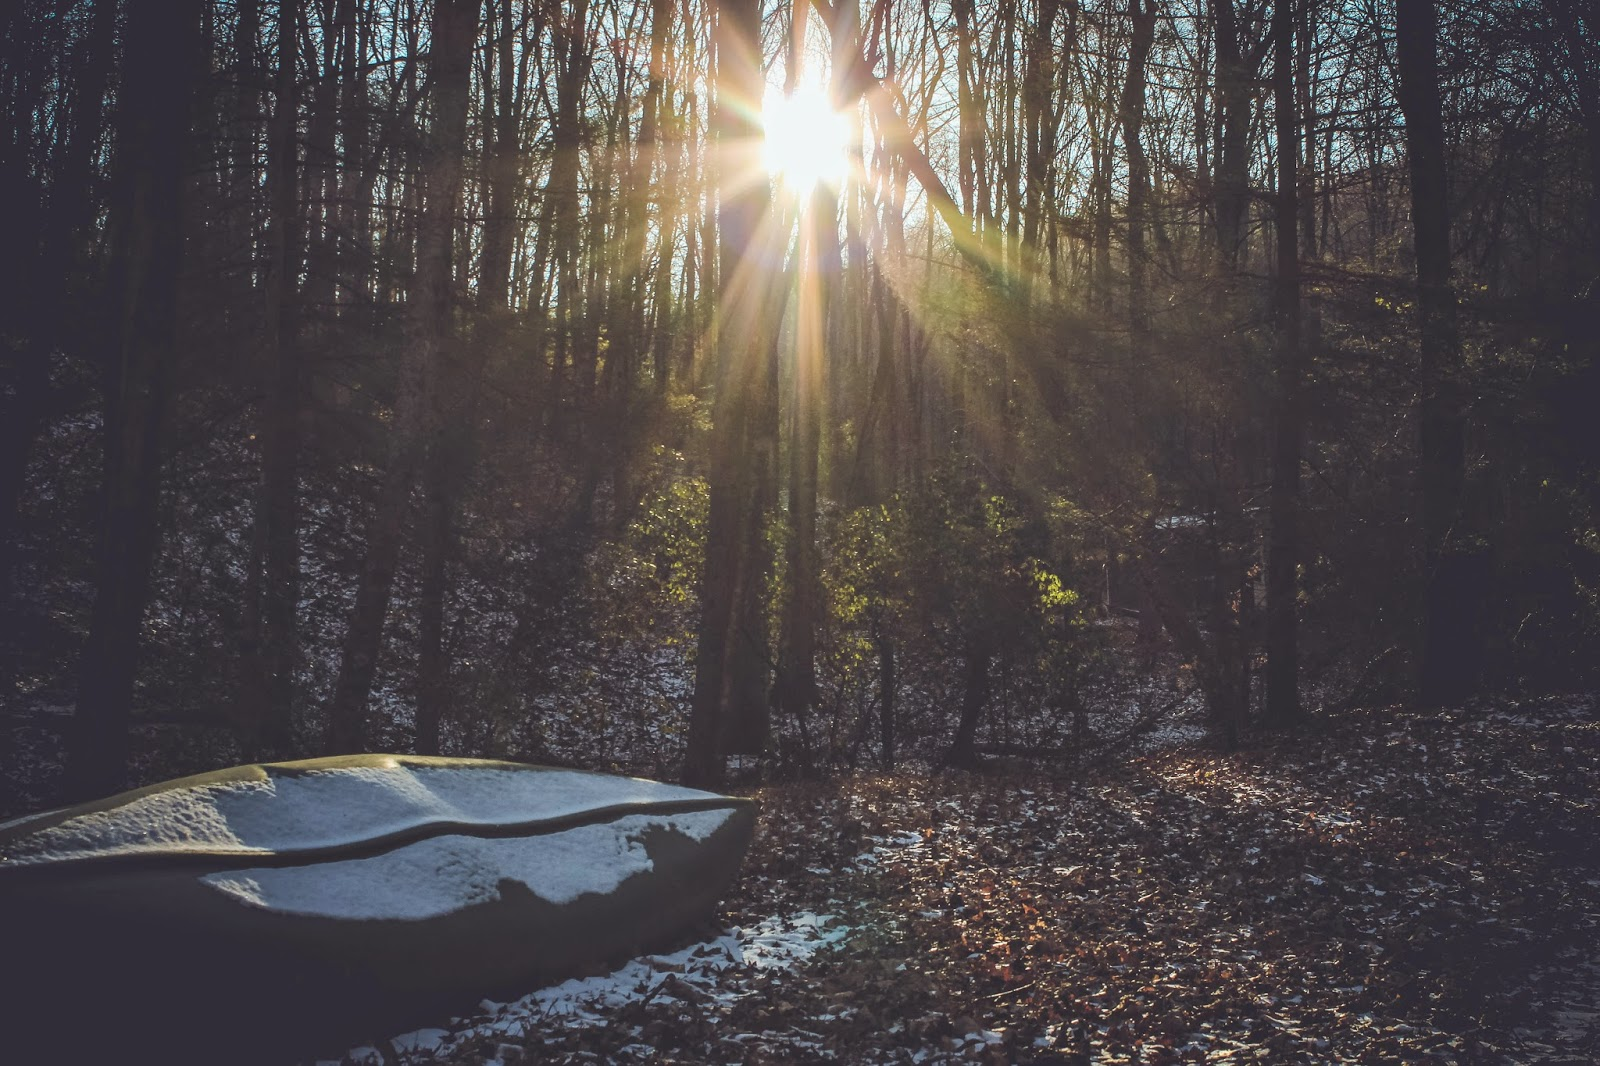 are we out of the woods yet snow georgia outdoors winter photography trees leaves canoe sunlight sun